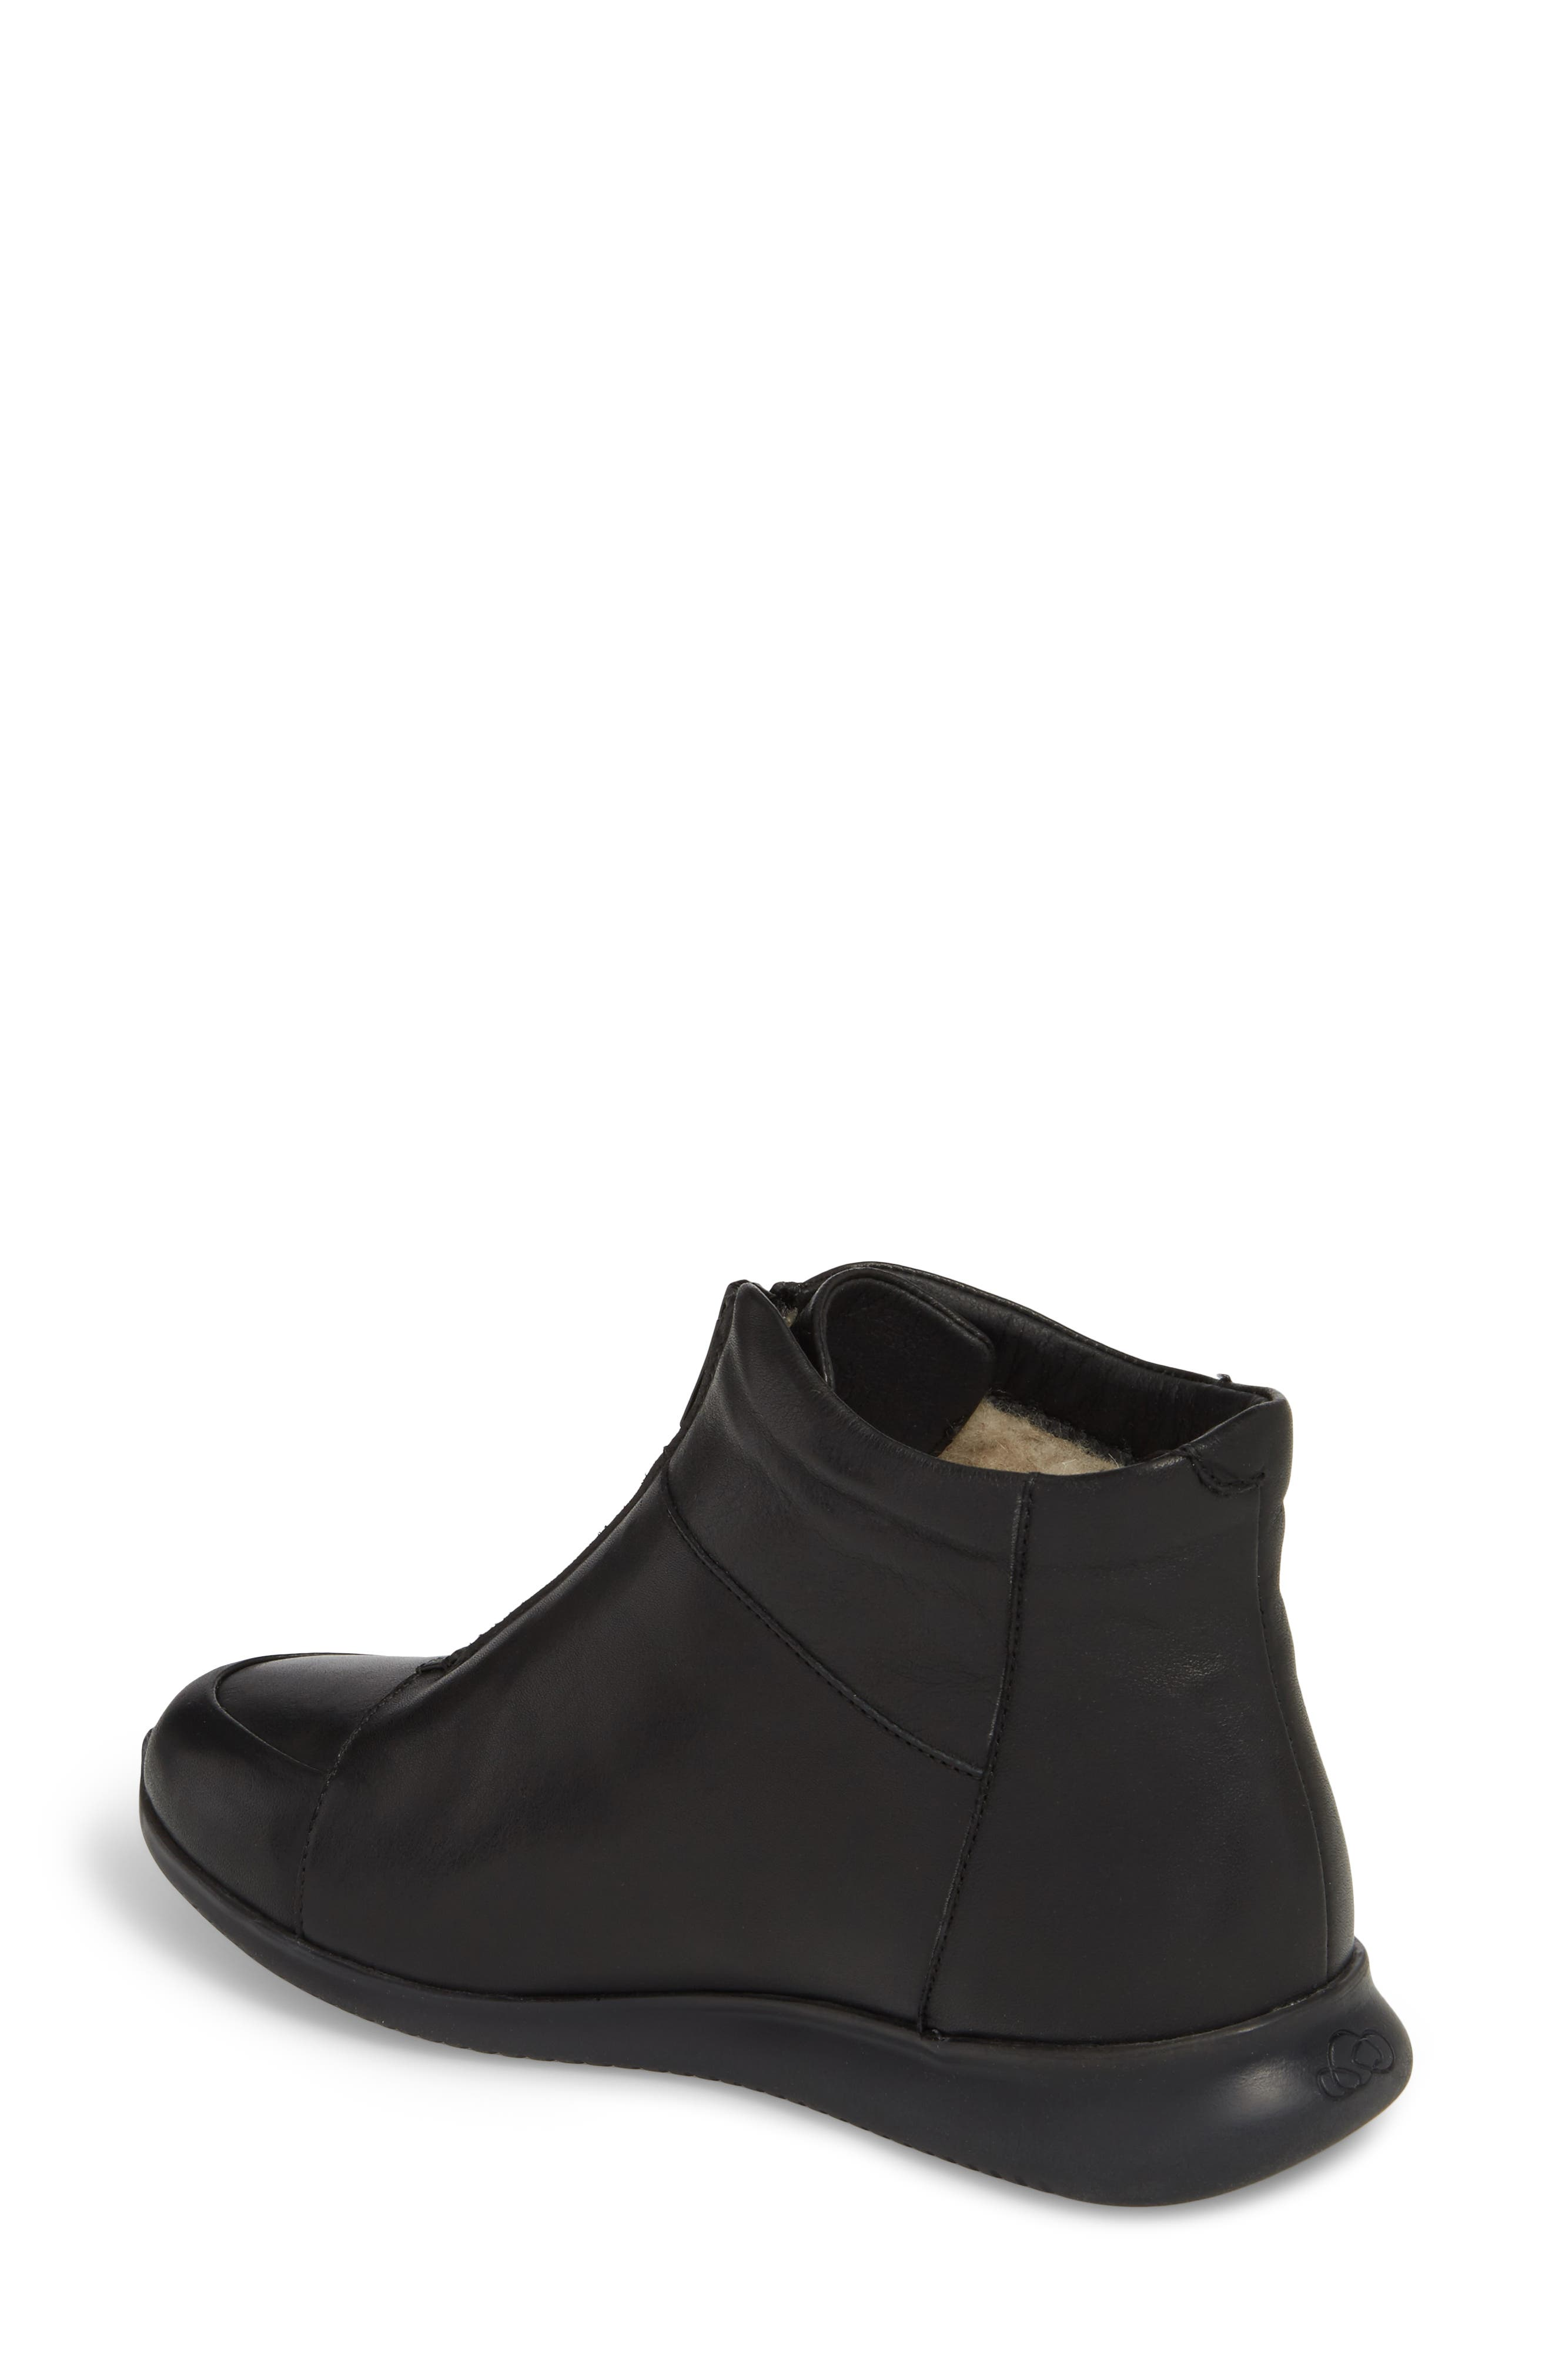 Roy Wool Lined Cap Toe Bootie,                             Alternate thumbnail 2, color,                             BLACK LEATHER